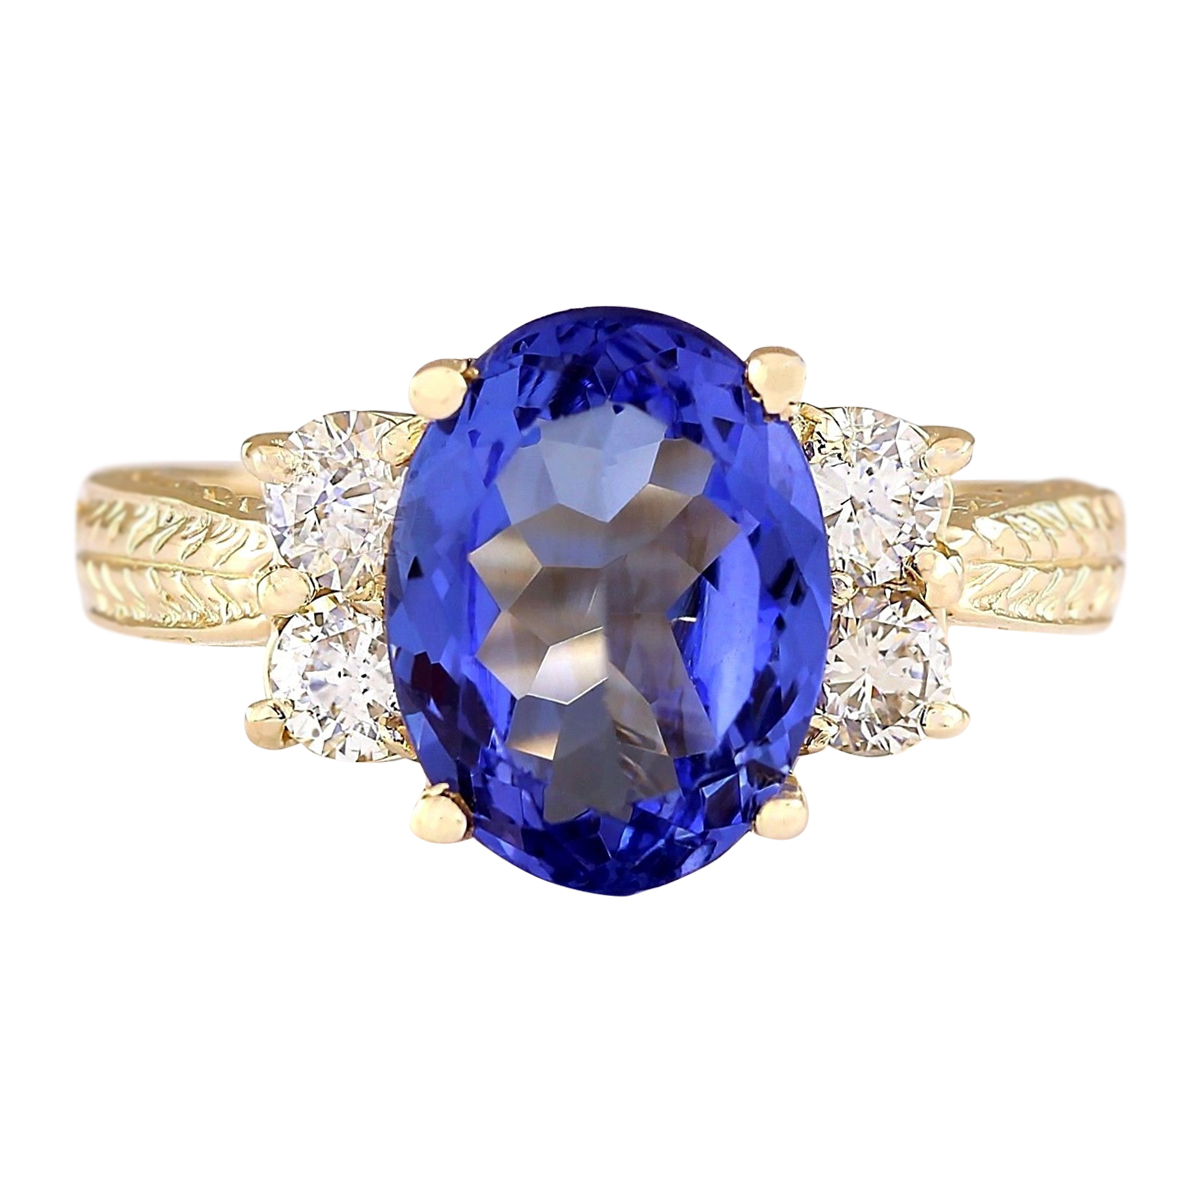 wedding engagement rings fullxfull il diamond natural blue ring gold deco gemstone band floral vs white tanzanite anniversary